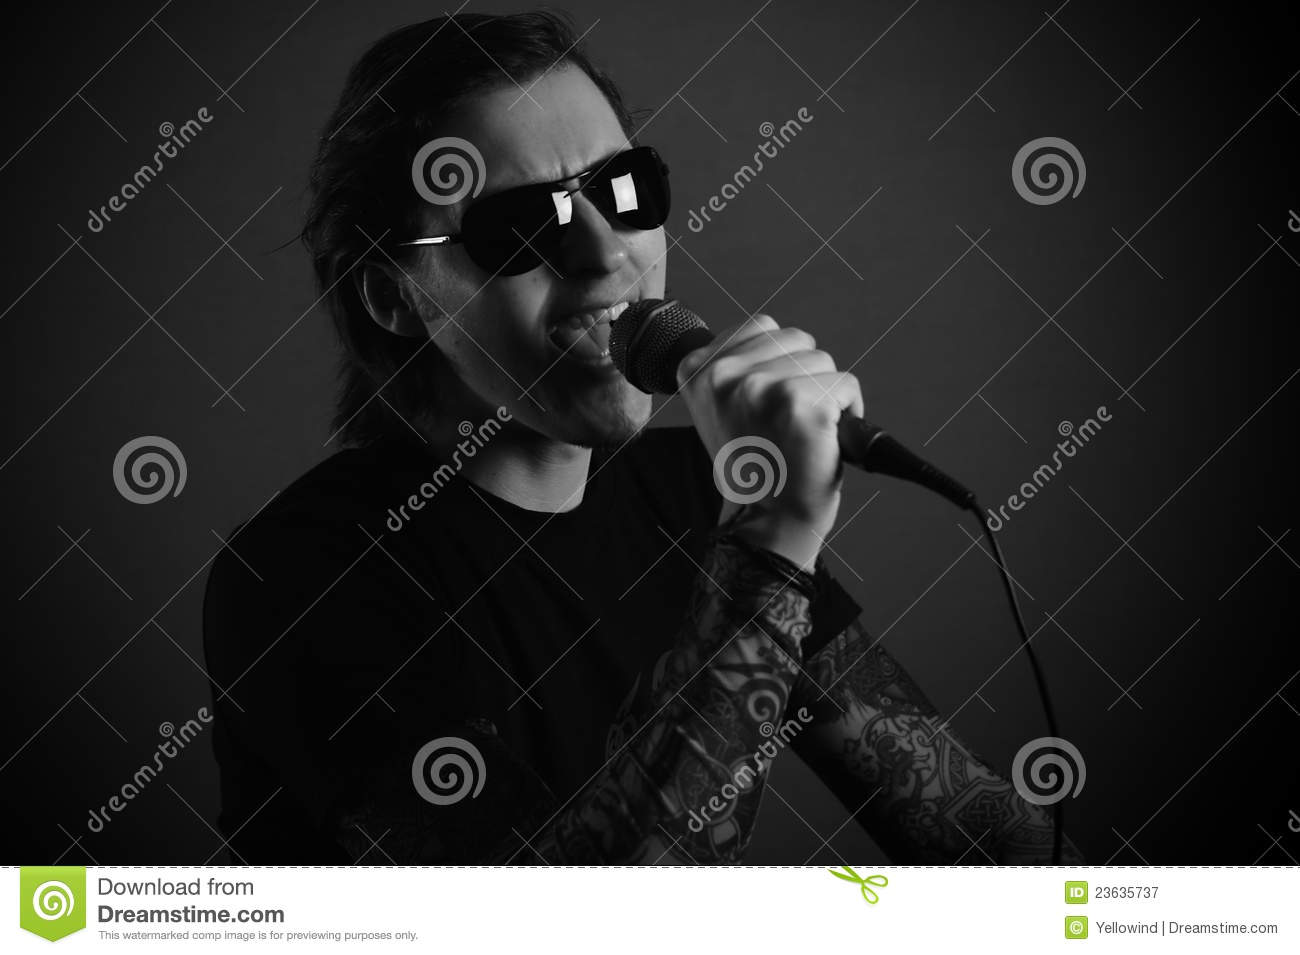 Man singer with microphone rock or metal